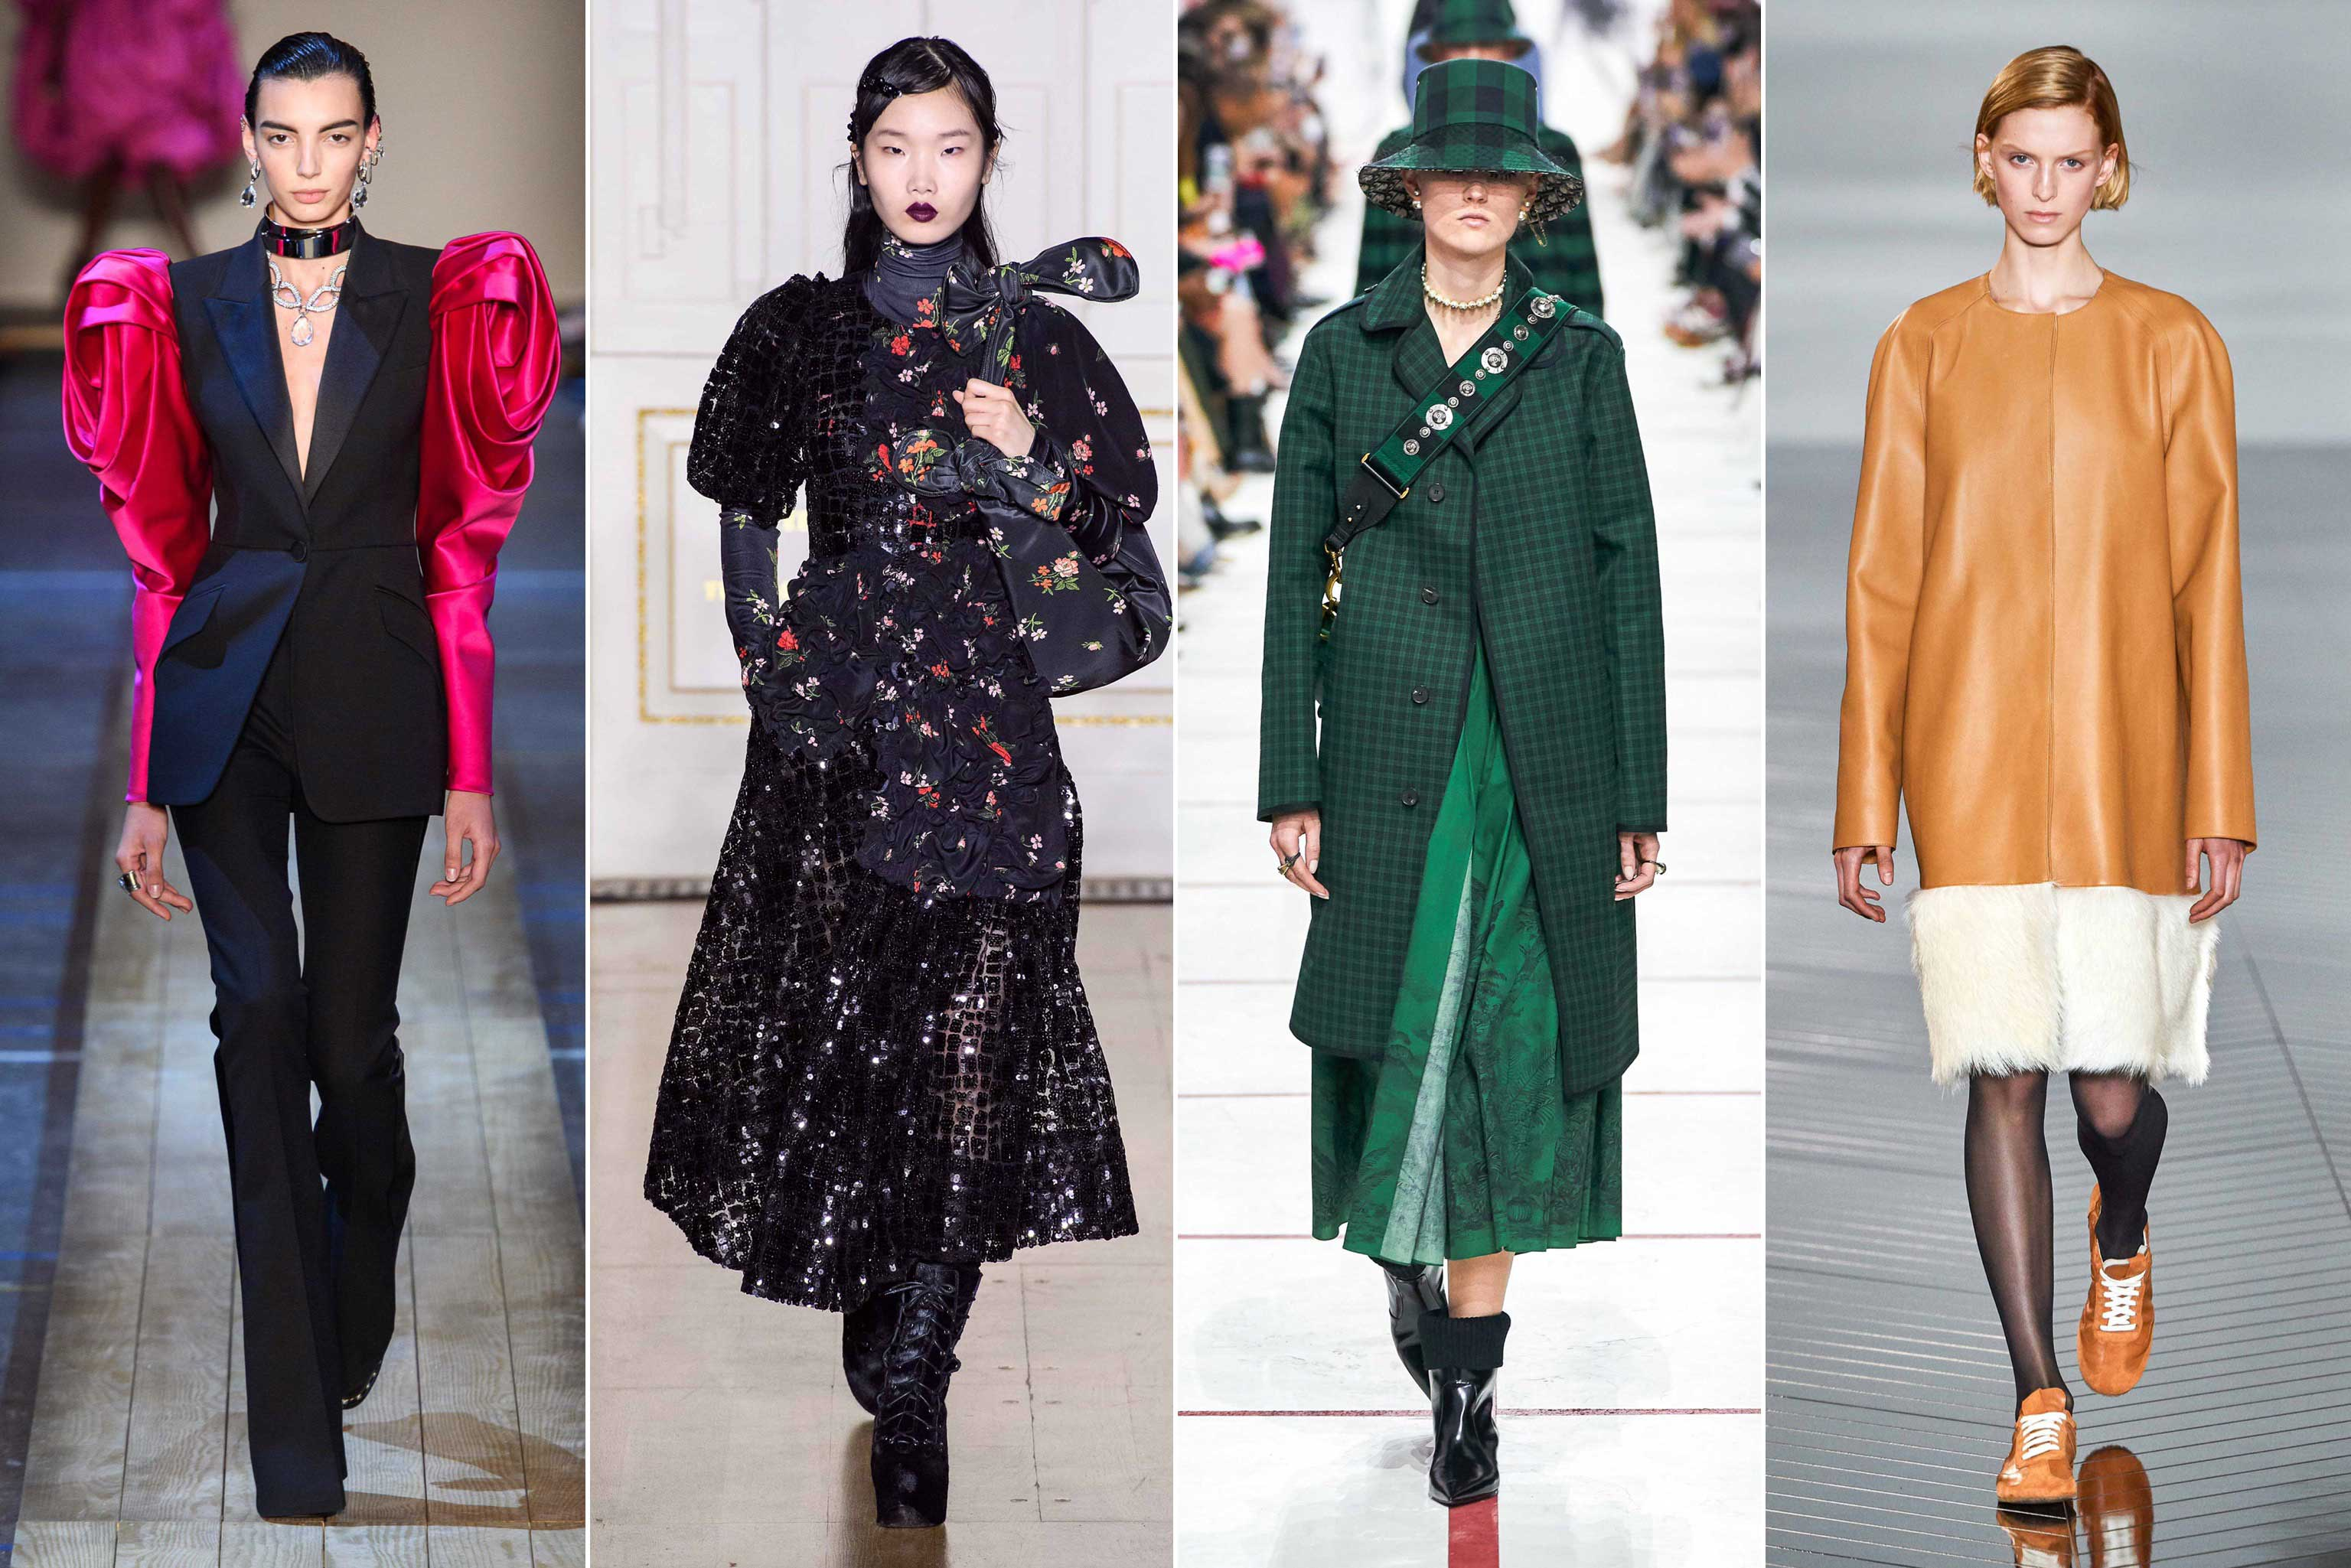 The Fall 2019-2020 Fashion Trends